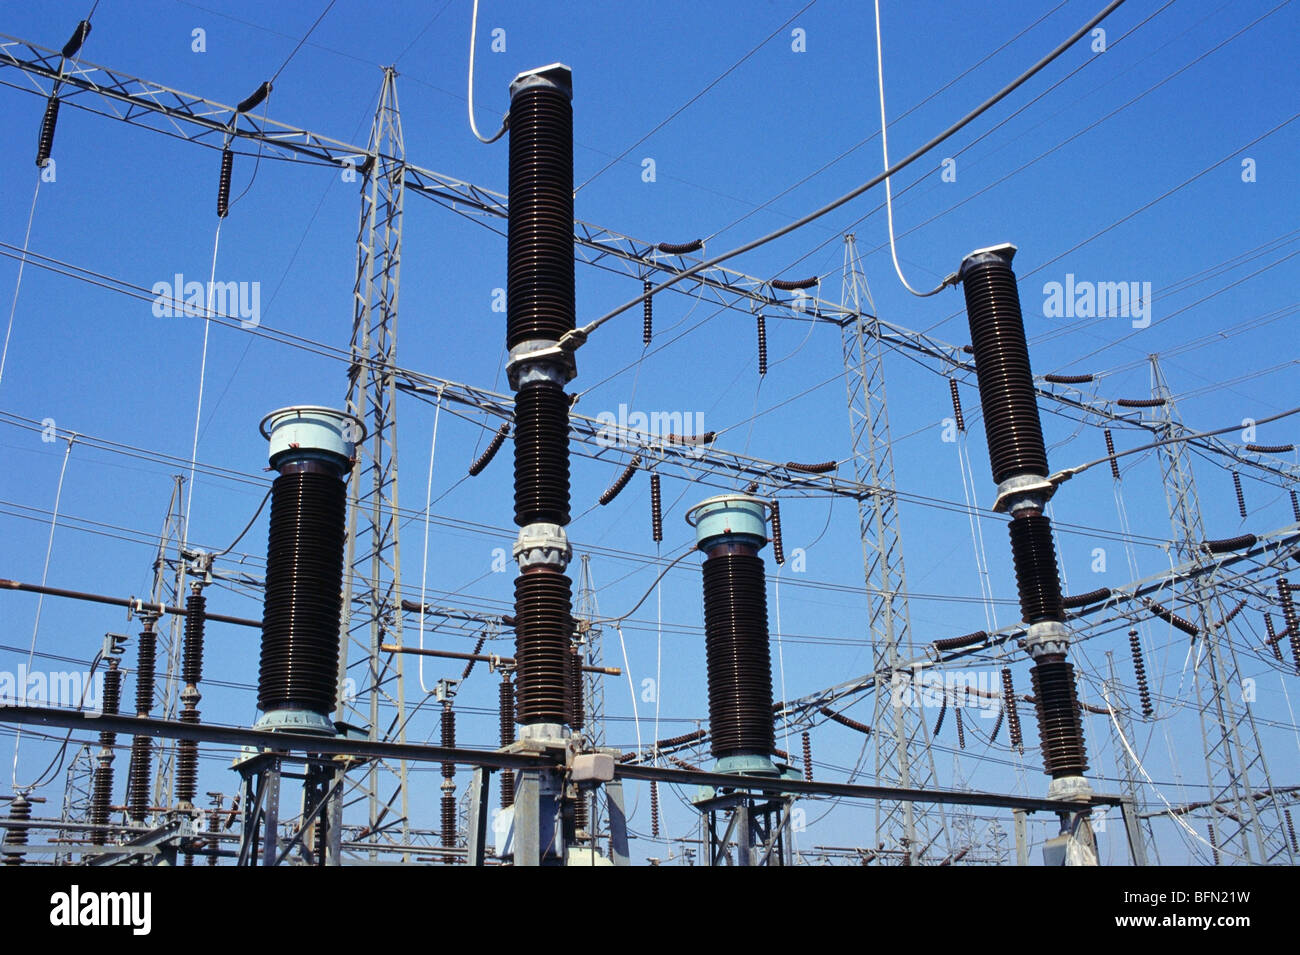 India Electric Transformers Stock Photos Electrical Wiring System In Vpa 61284 Power Plant Electricity Distribution Image